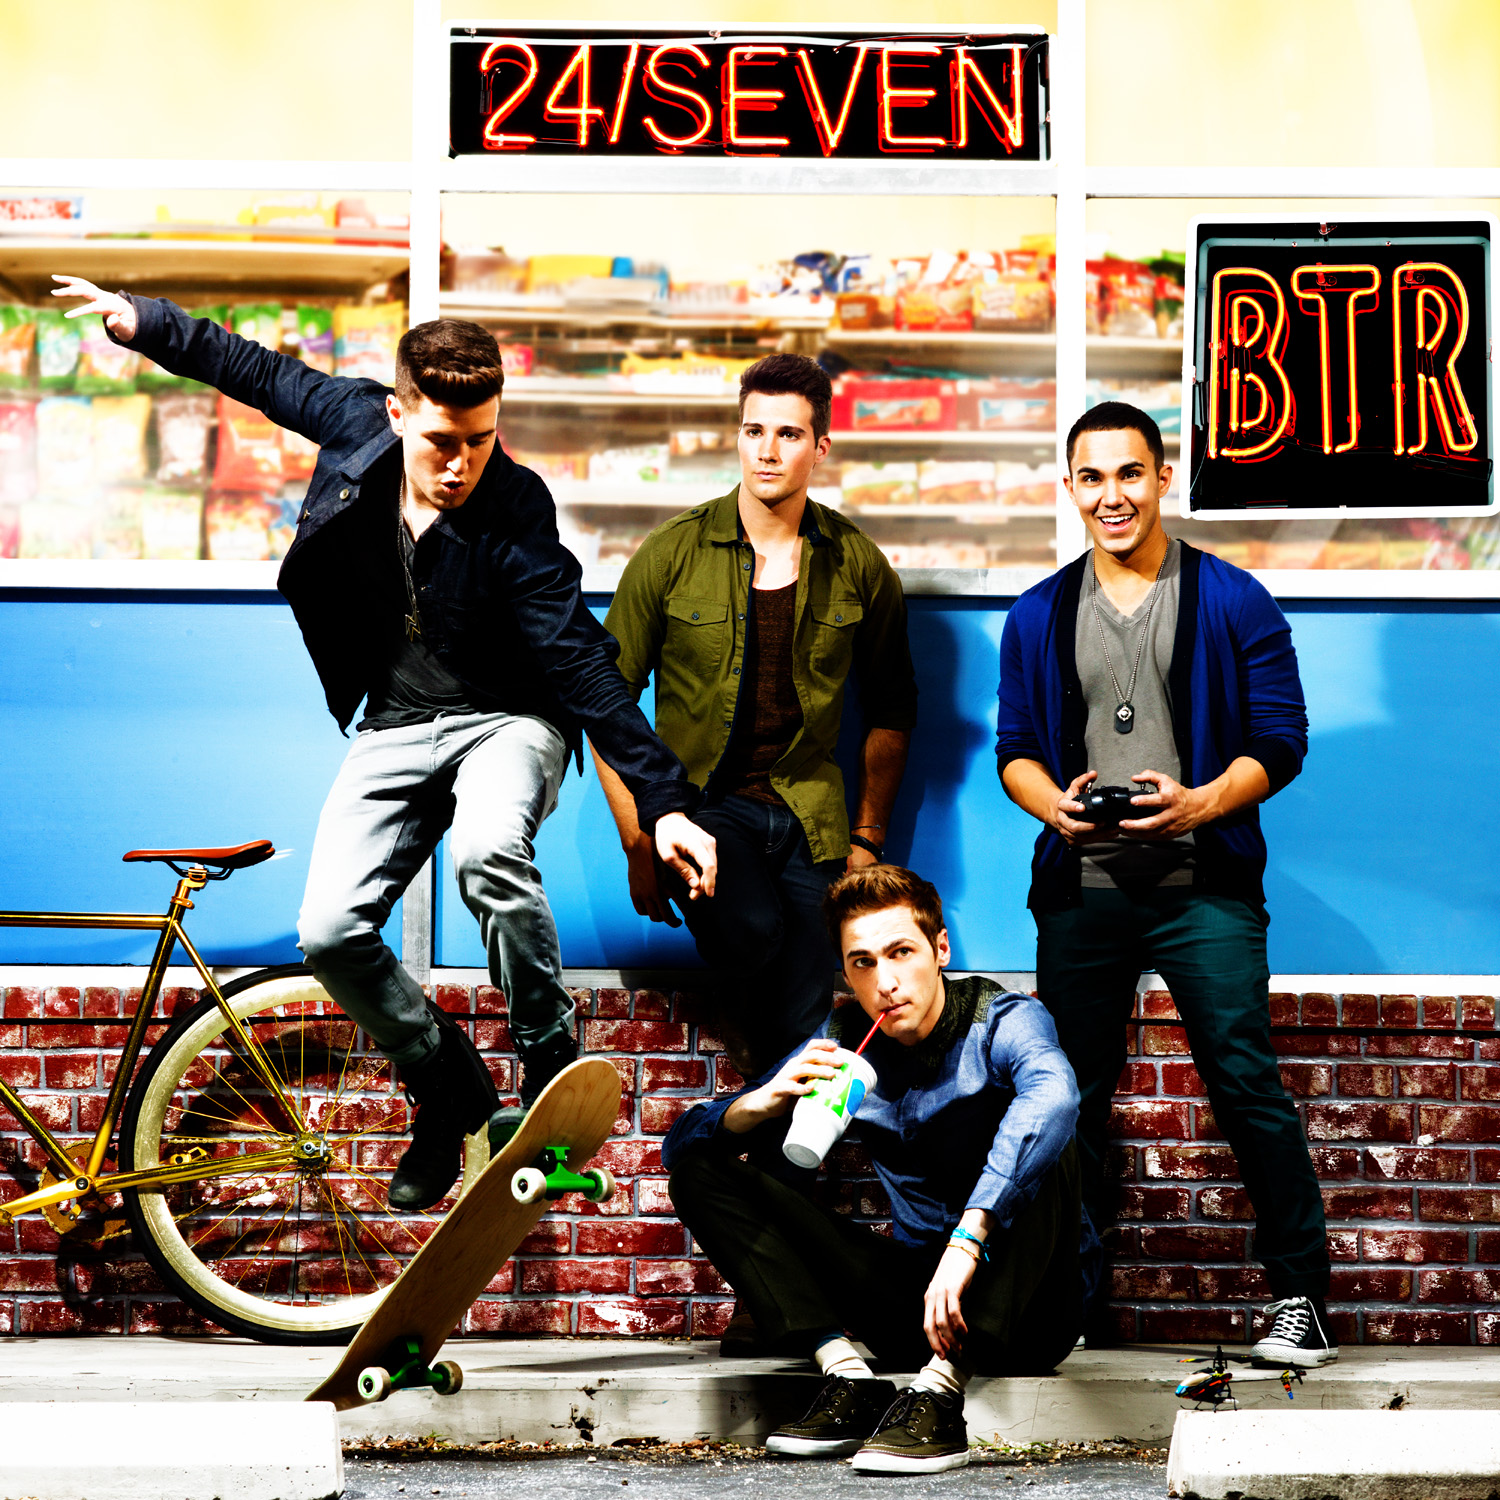 24 seven, big time rush, carlos pena jr, james maslow, kendall schmidt, logan henderson